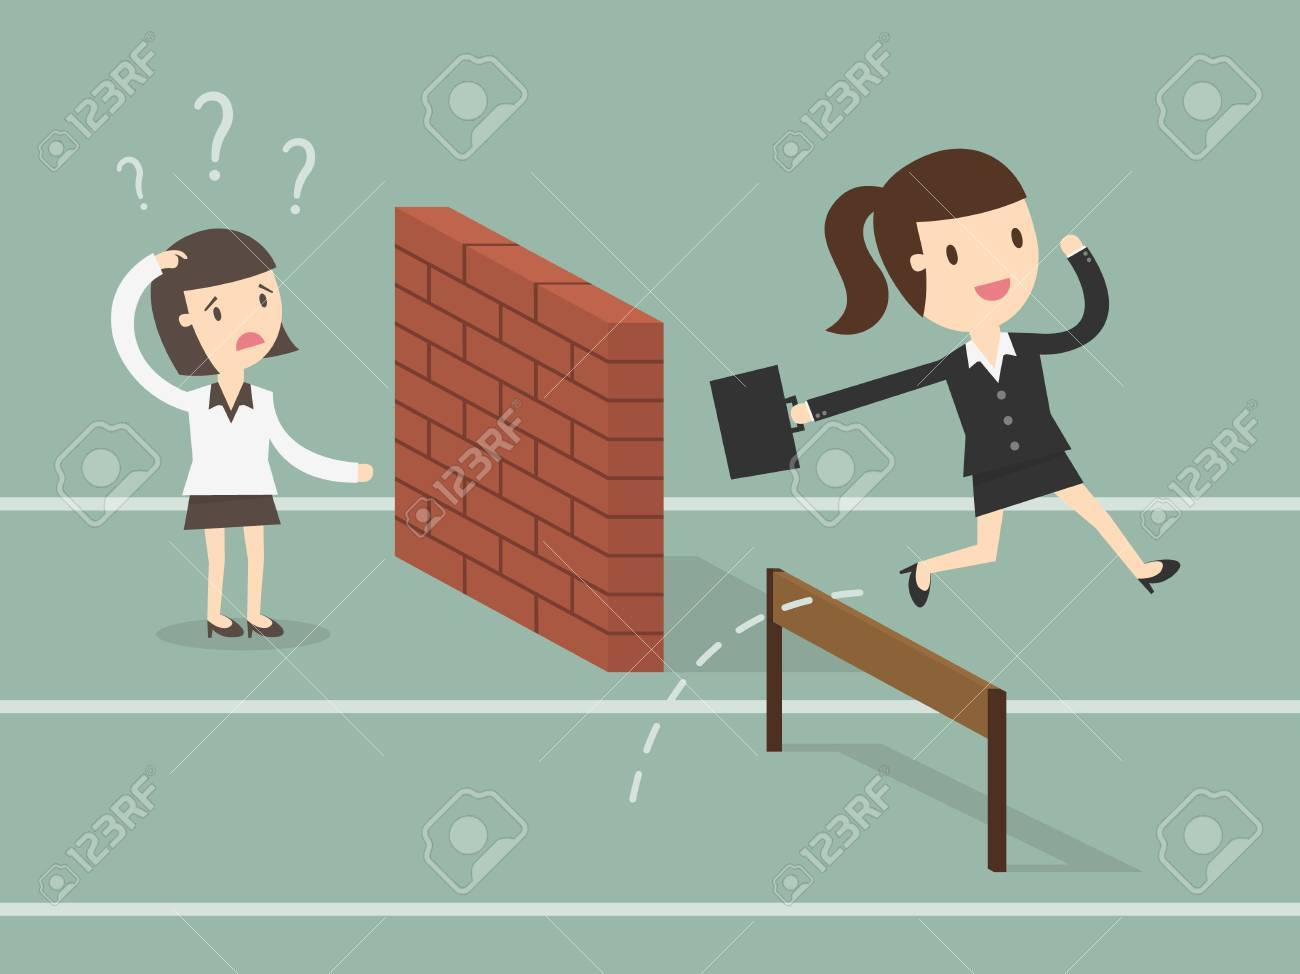 Concept of business competition with jumping businessman - 53139131